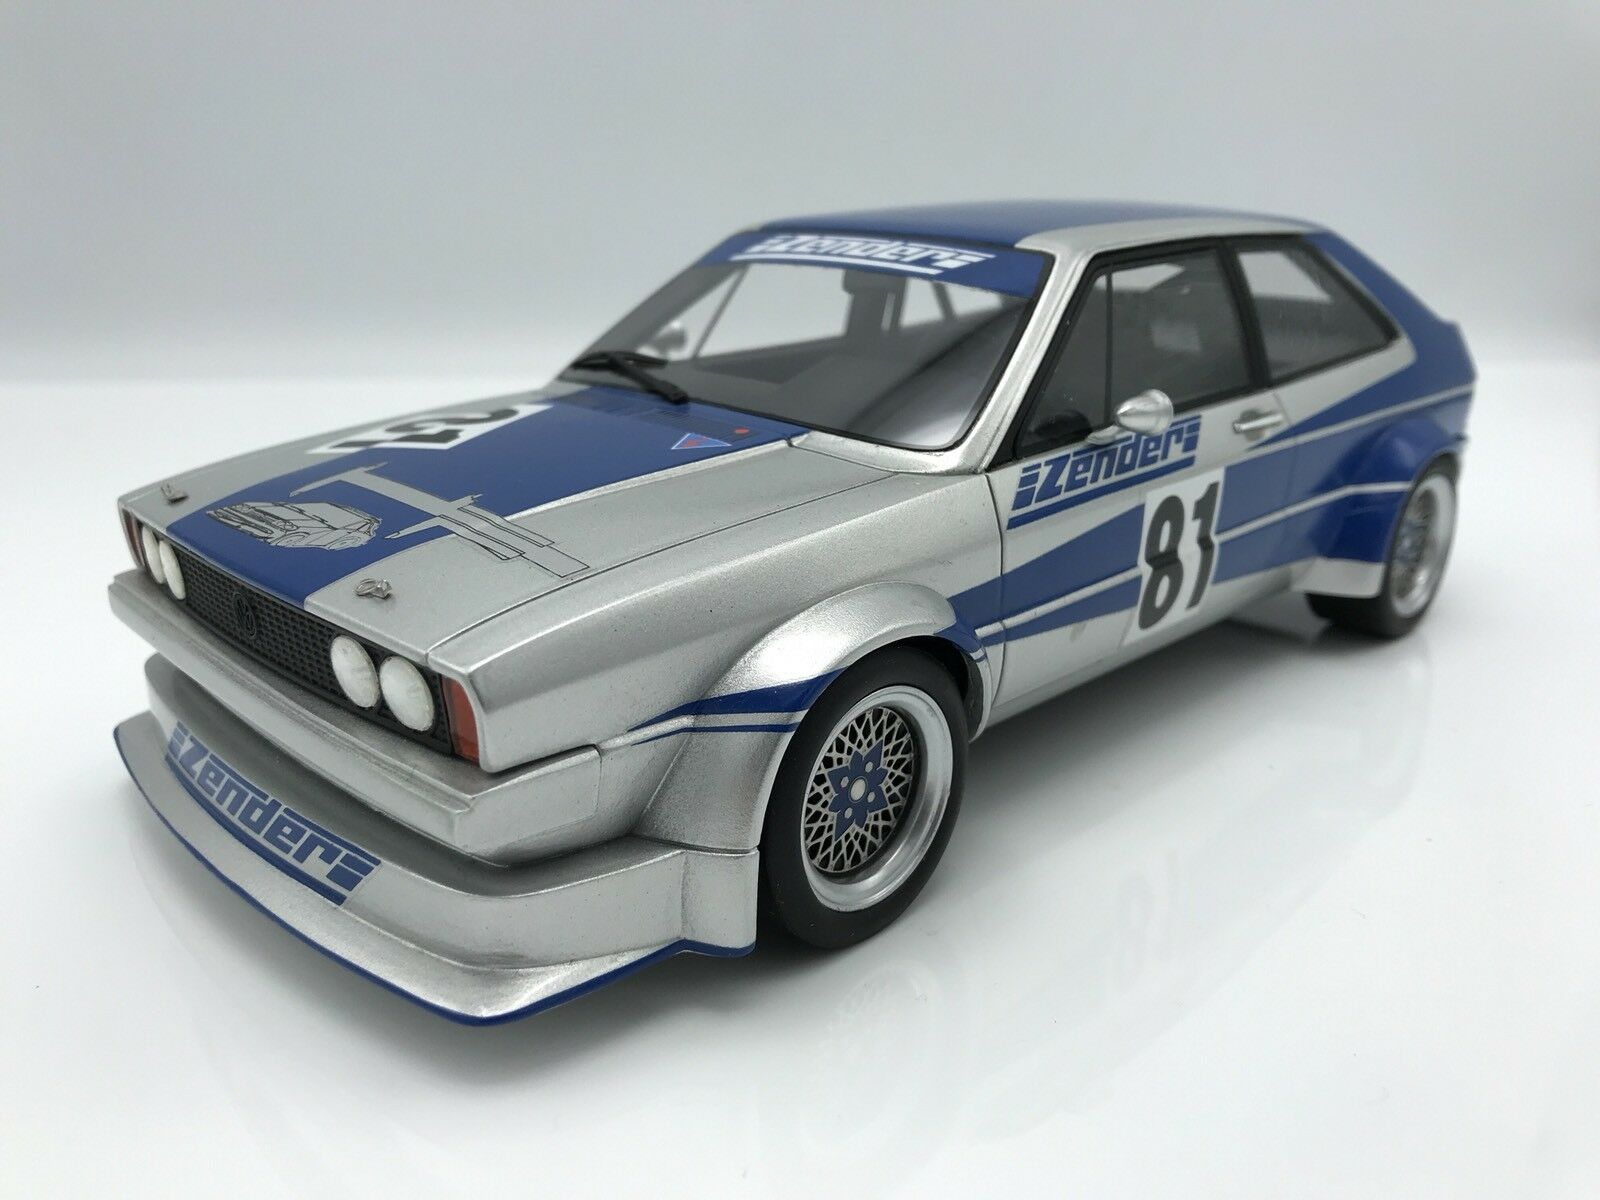 VW Scirocco I Taille 2,  81 Zender DRM 1978 1 18 BoS    NEW